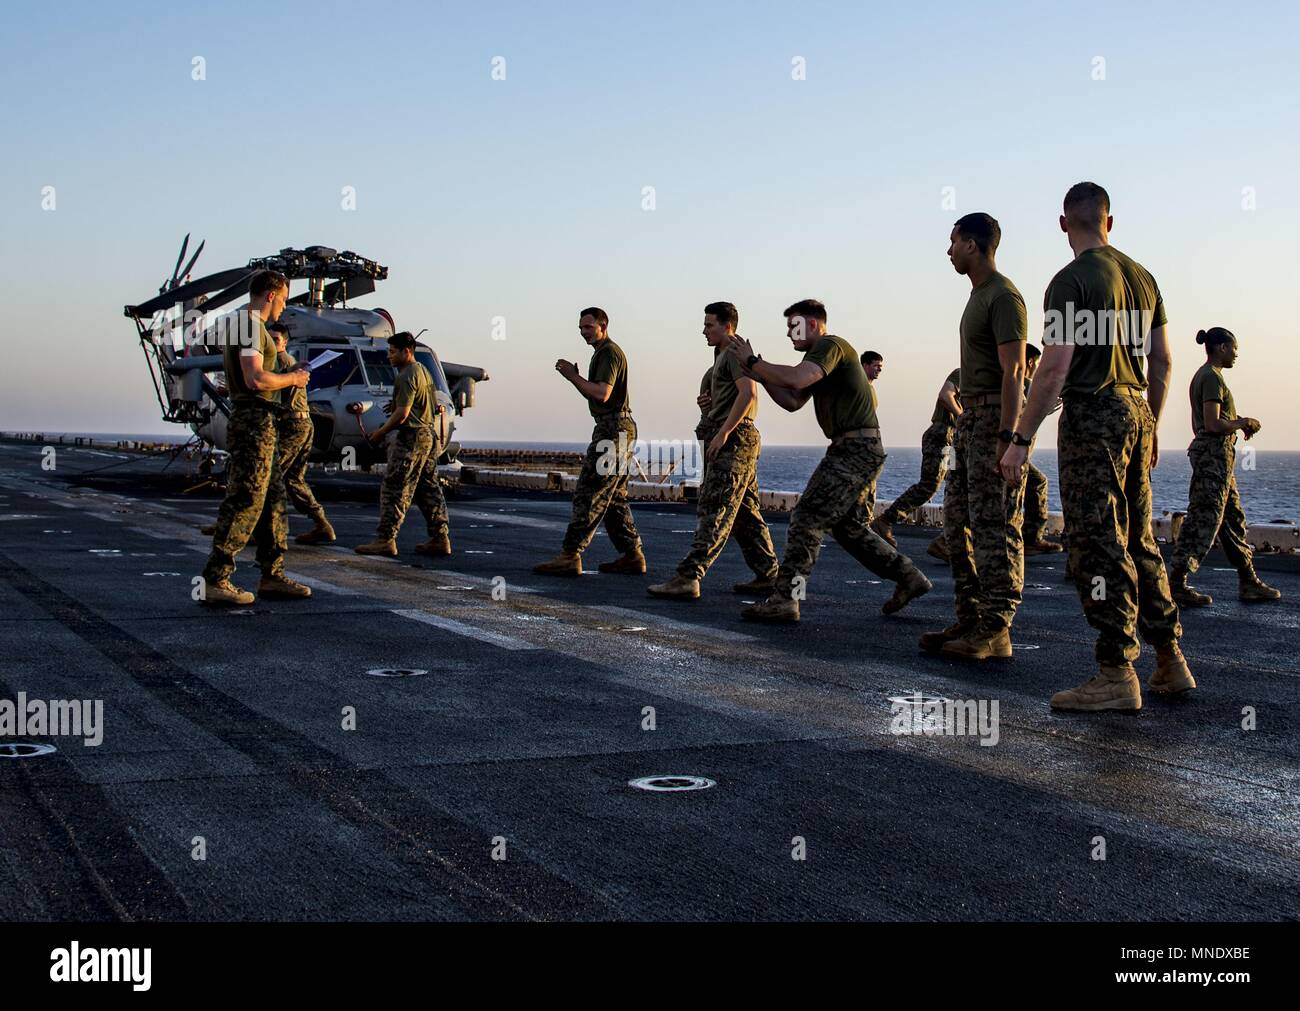 180515-N-ZK016-0002 U.S. 5TH FLEET AREA OF OPERATIONS (May 15, 2018) Marines, assigned to the 26th Marine Expeditionary Unit practice hand-to-hand combat exercises on the flight deck of the Wasp-class amphibious assault ship USS Iwo Jima (LHD 7), May 15, 2018, May 15, 2018. Iwo Jima, homeported in Mayport, Fla. is on deployment to the U.S. 5th Fleet area of operations in support of maritime security operations to reassure allies and partners, and preserve the freedom of navigation and the free flow of commerce in the region. (U.S. Navy photo by Mass Communication Specialist 3rd Class Joe J. Ca Stock Photo